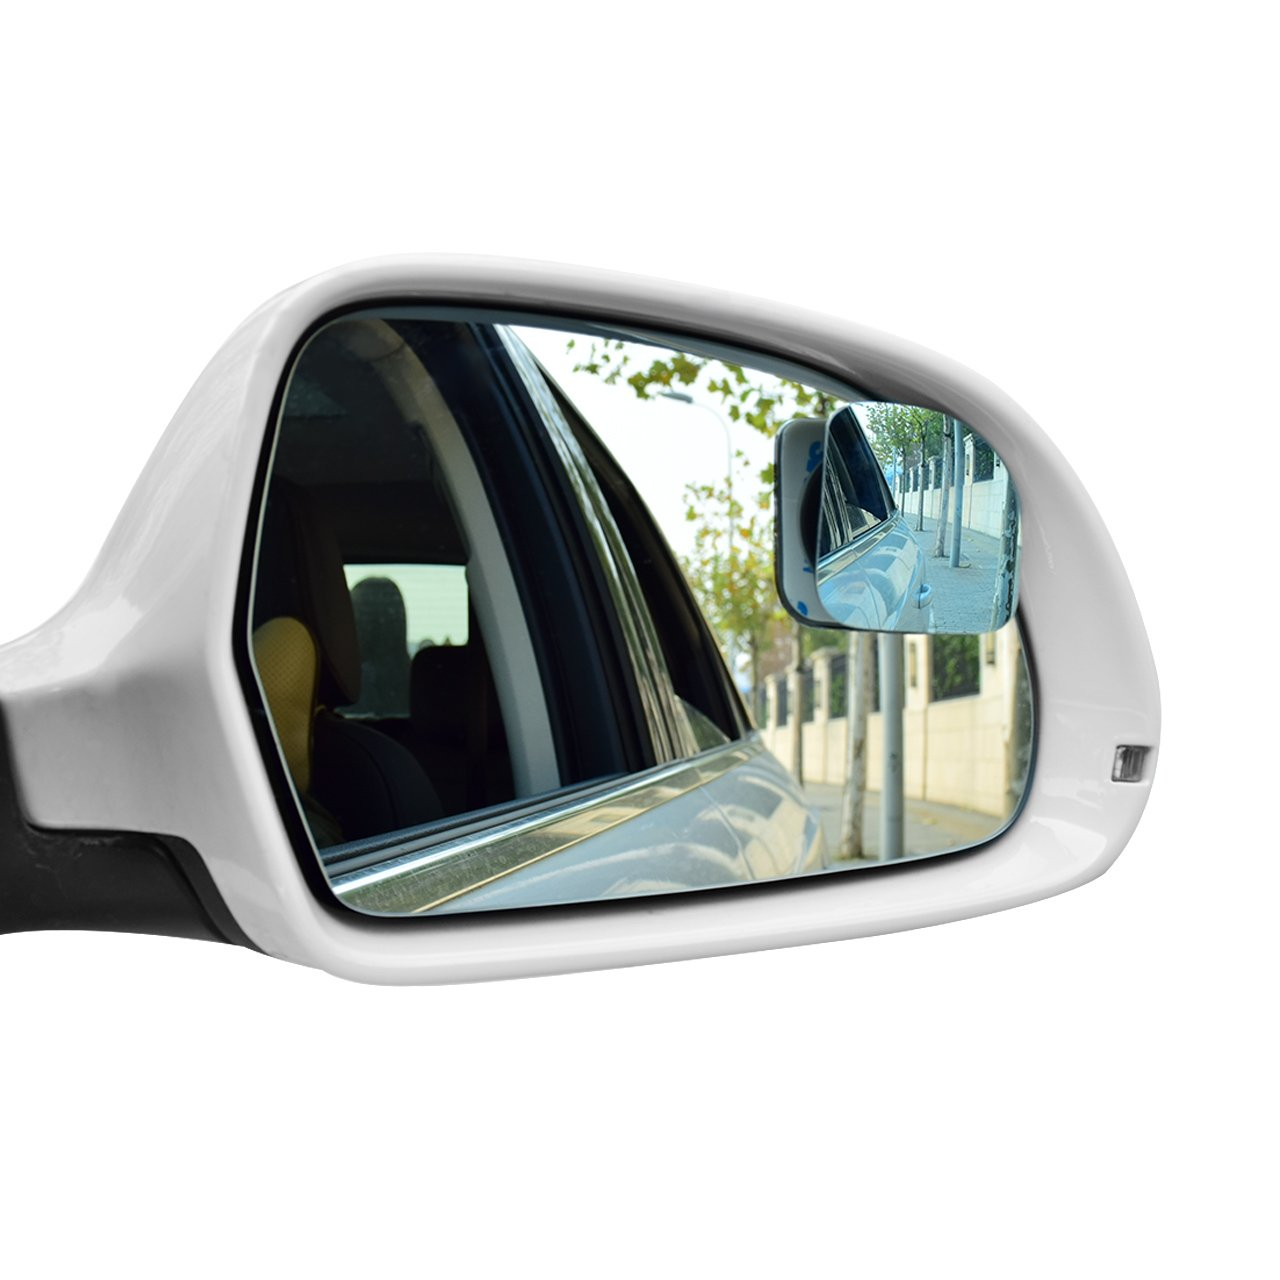 DEDC Blind Spot Mirrors Two Pack Fan-Shaped Anti Glare Blue Tint Blind Spot Mirrors For Cars Adjustable Blindspot Mirror Car 360 Degree Rotate